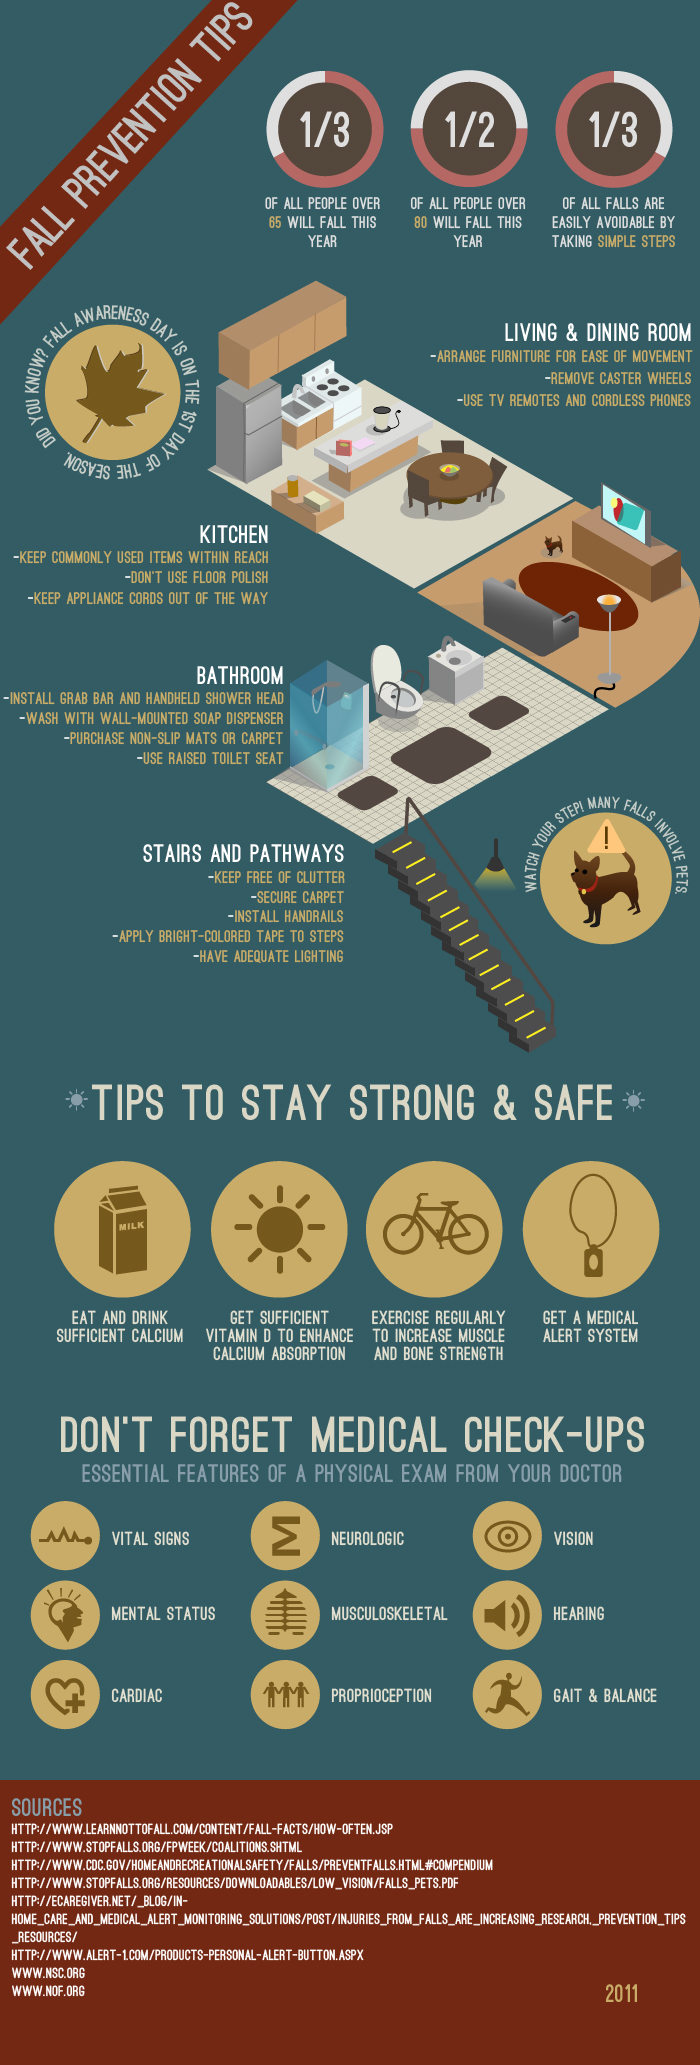 Senior Friendly Tips To Prevent Falls At Home